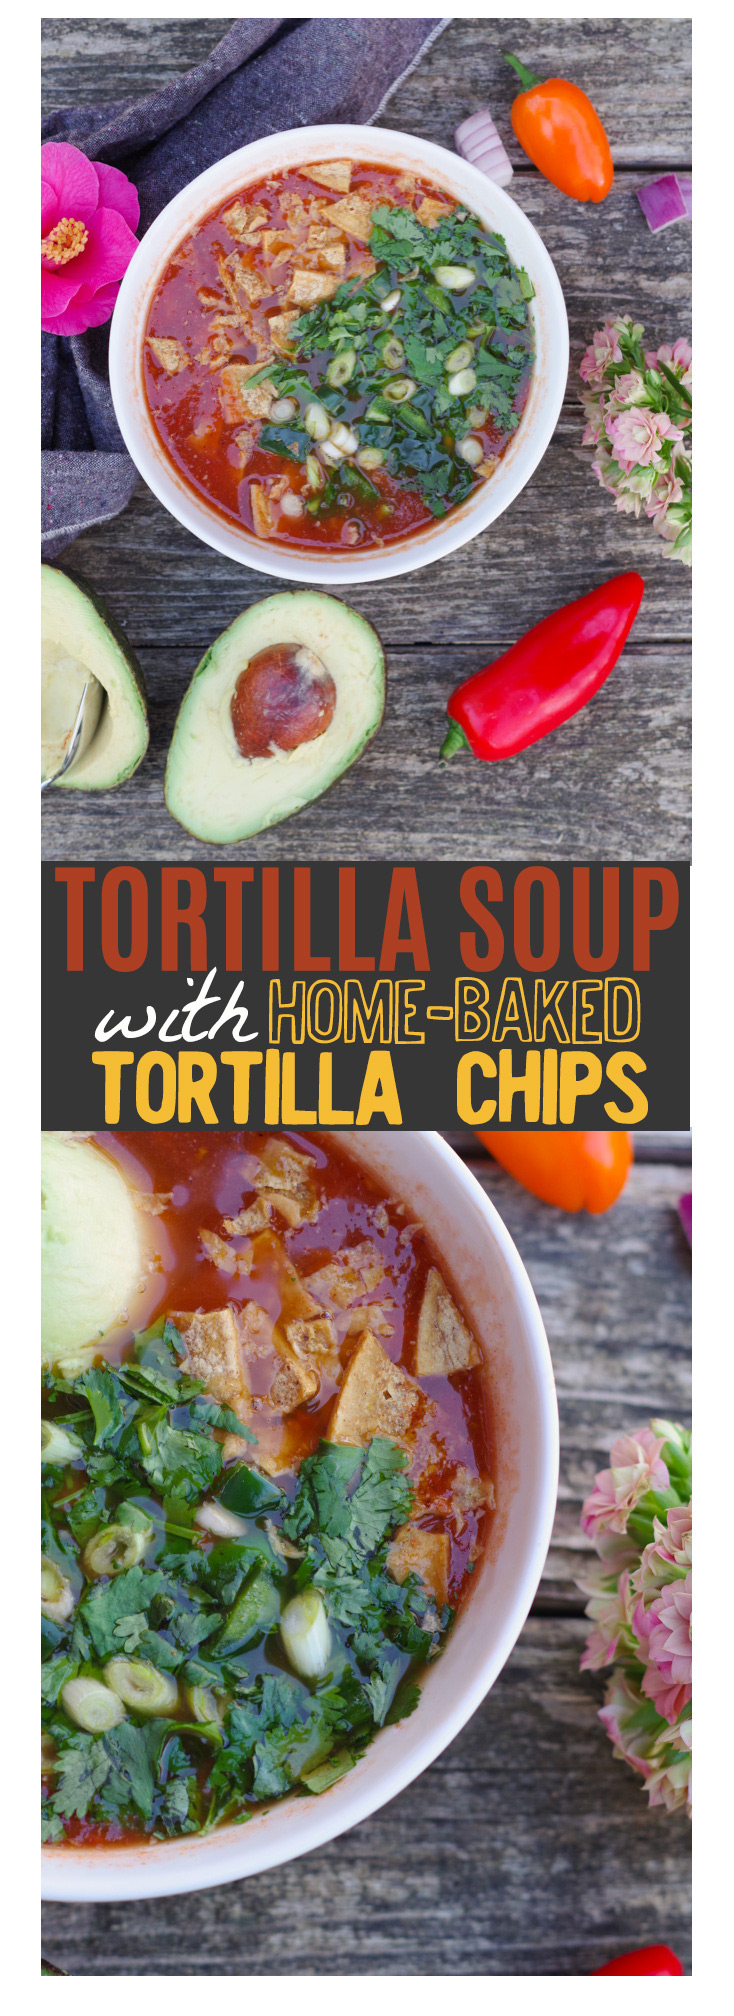 Tortilla soup made with home-baked corn tortilla chips. by Beautiful Ingredient